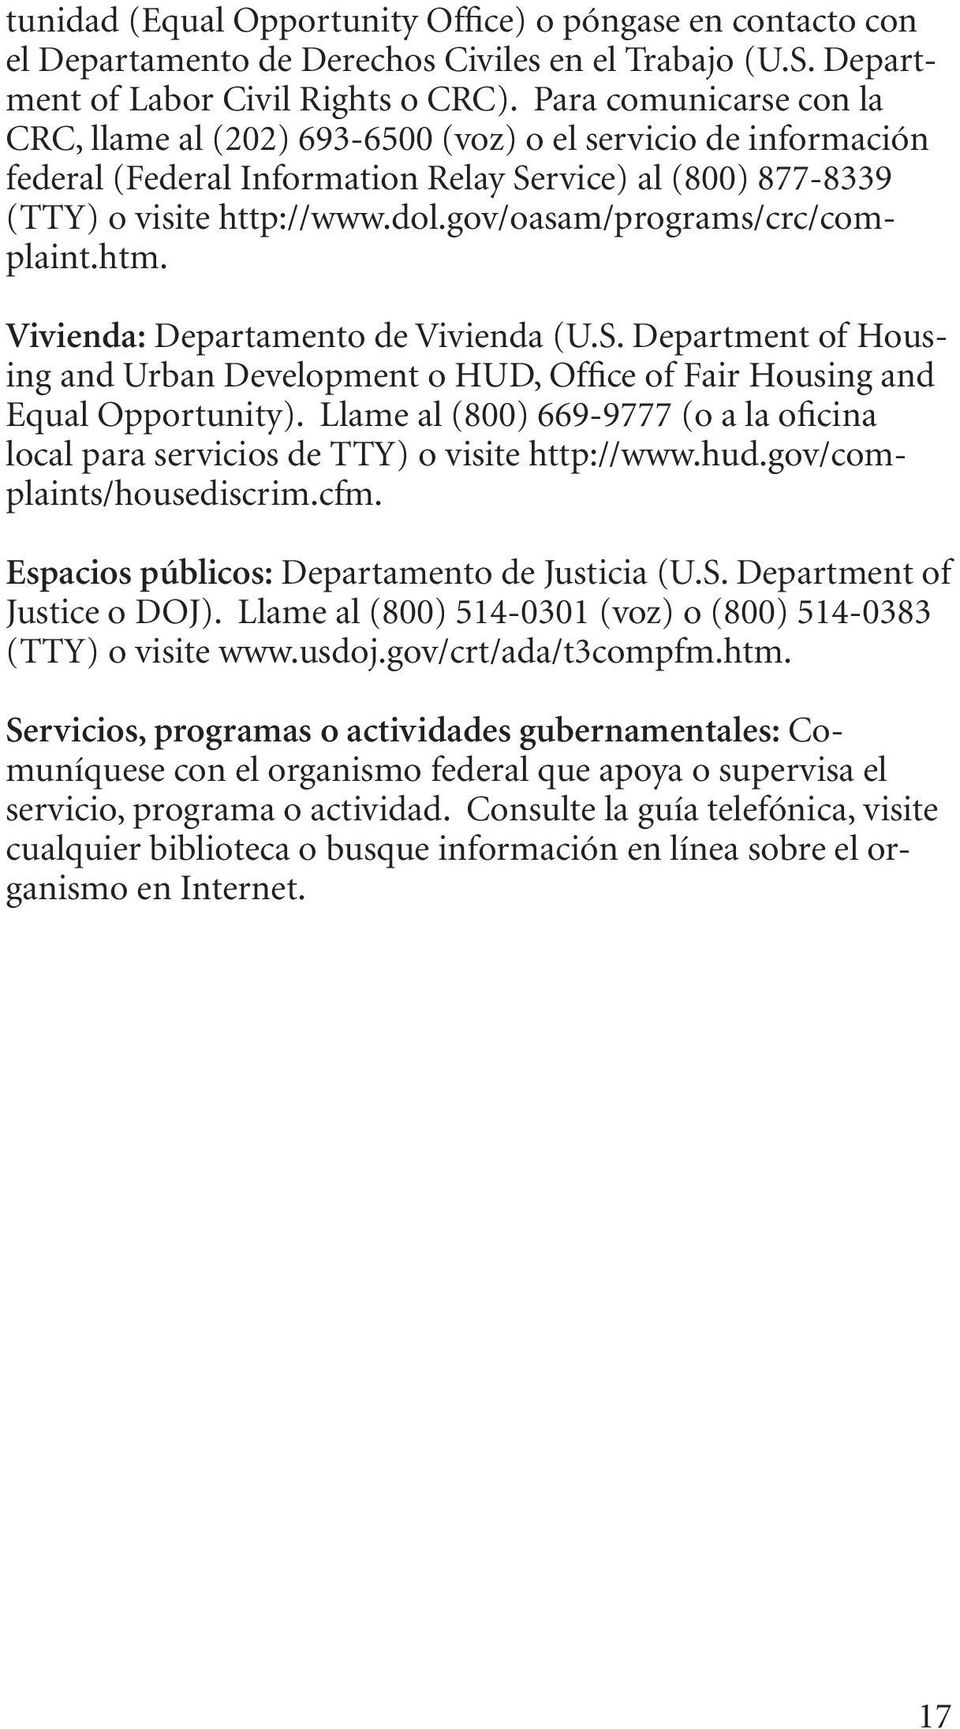 gov/oasam/programs/crc/complaint.htm. Vivienda: Departamento de Vivienda (U.S. Department of Housing and Urban Development o HUD, Office of Fair Housing and Equal Opportunity).